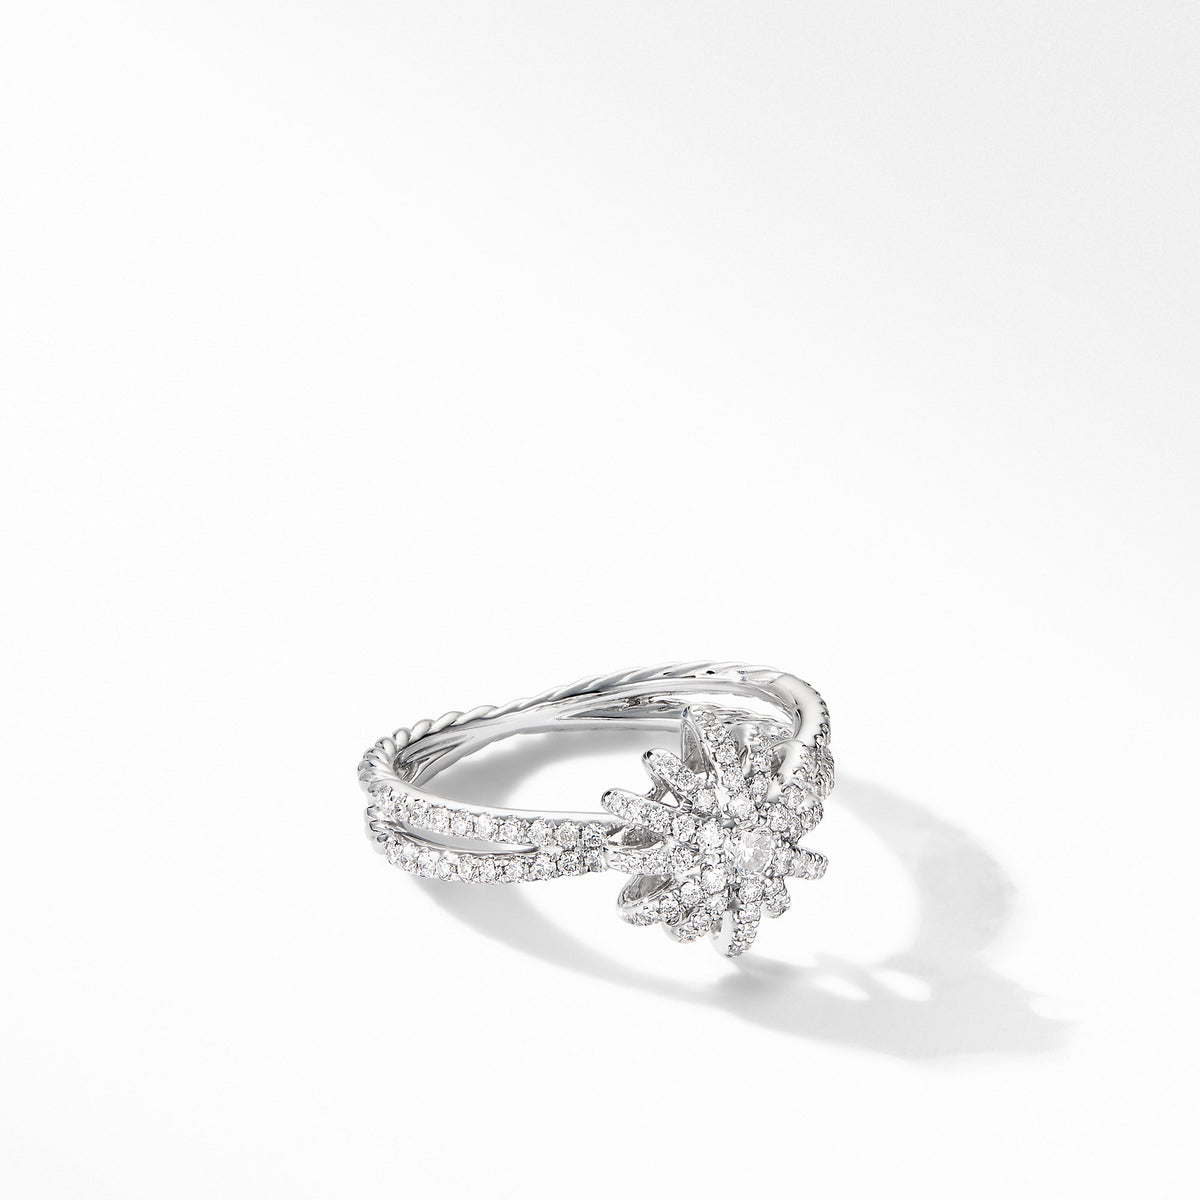 Starbust Ring in 18K White Gold with  Pave Diamonds